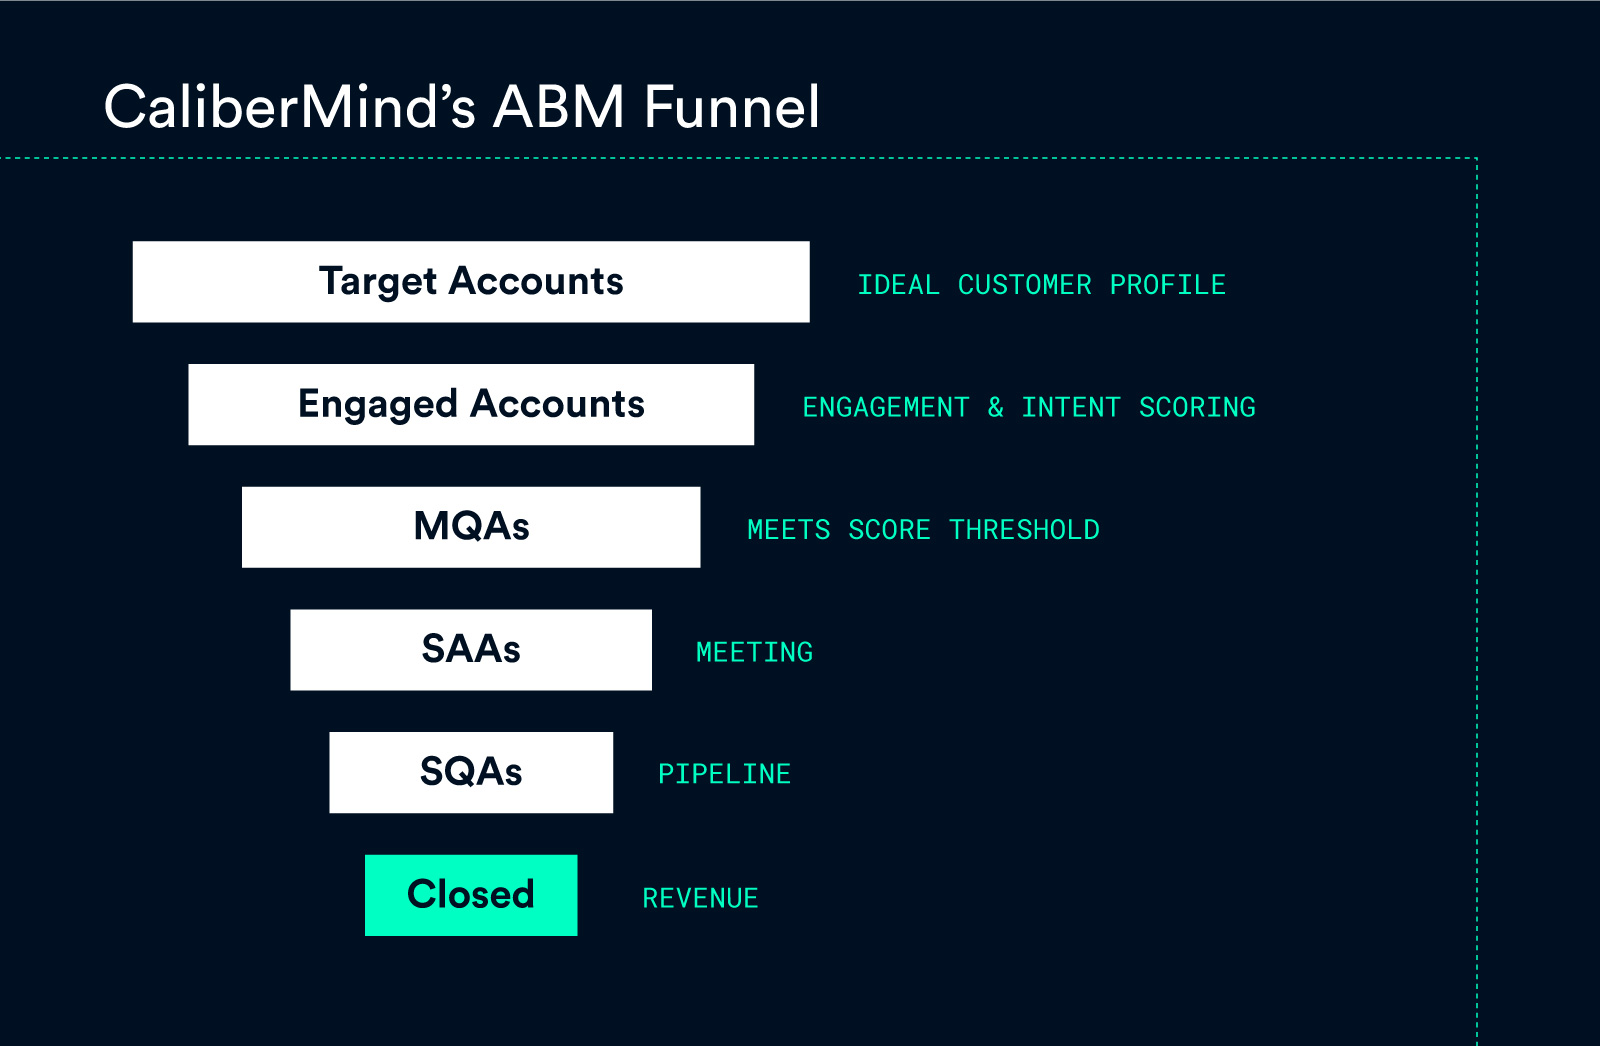 Playbook-ABM-Funnel